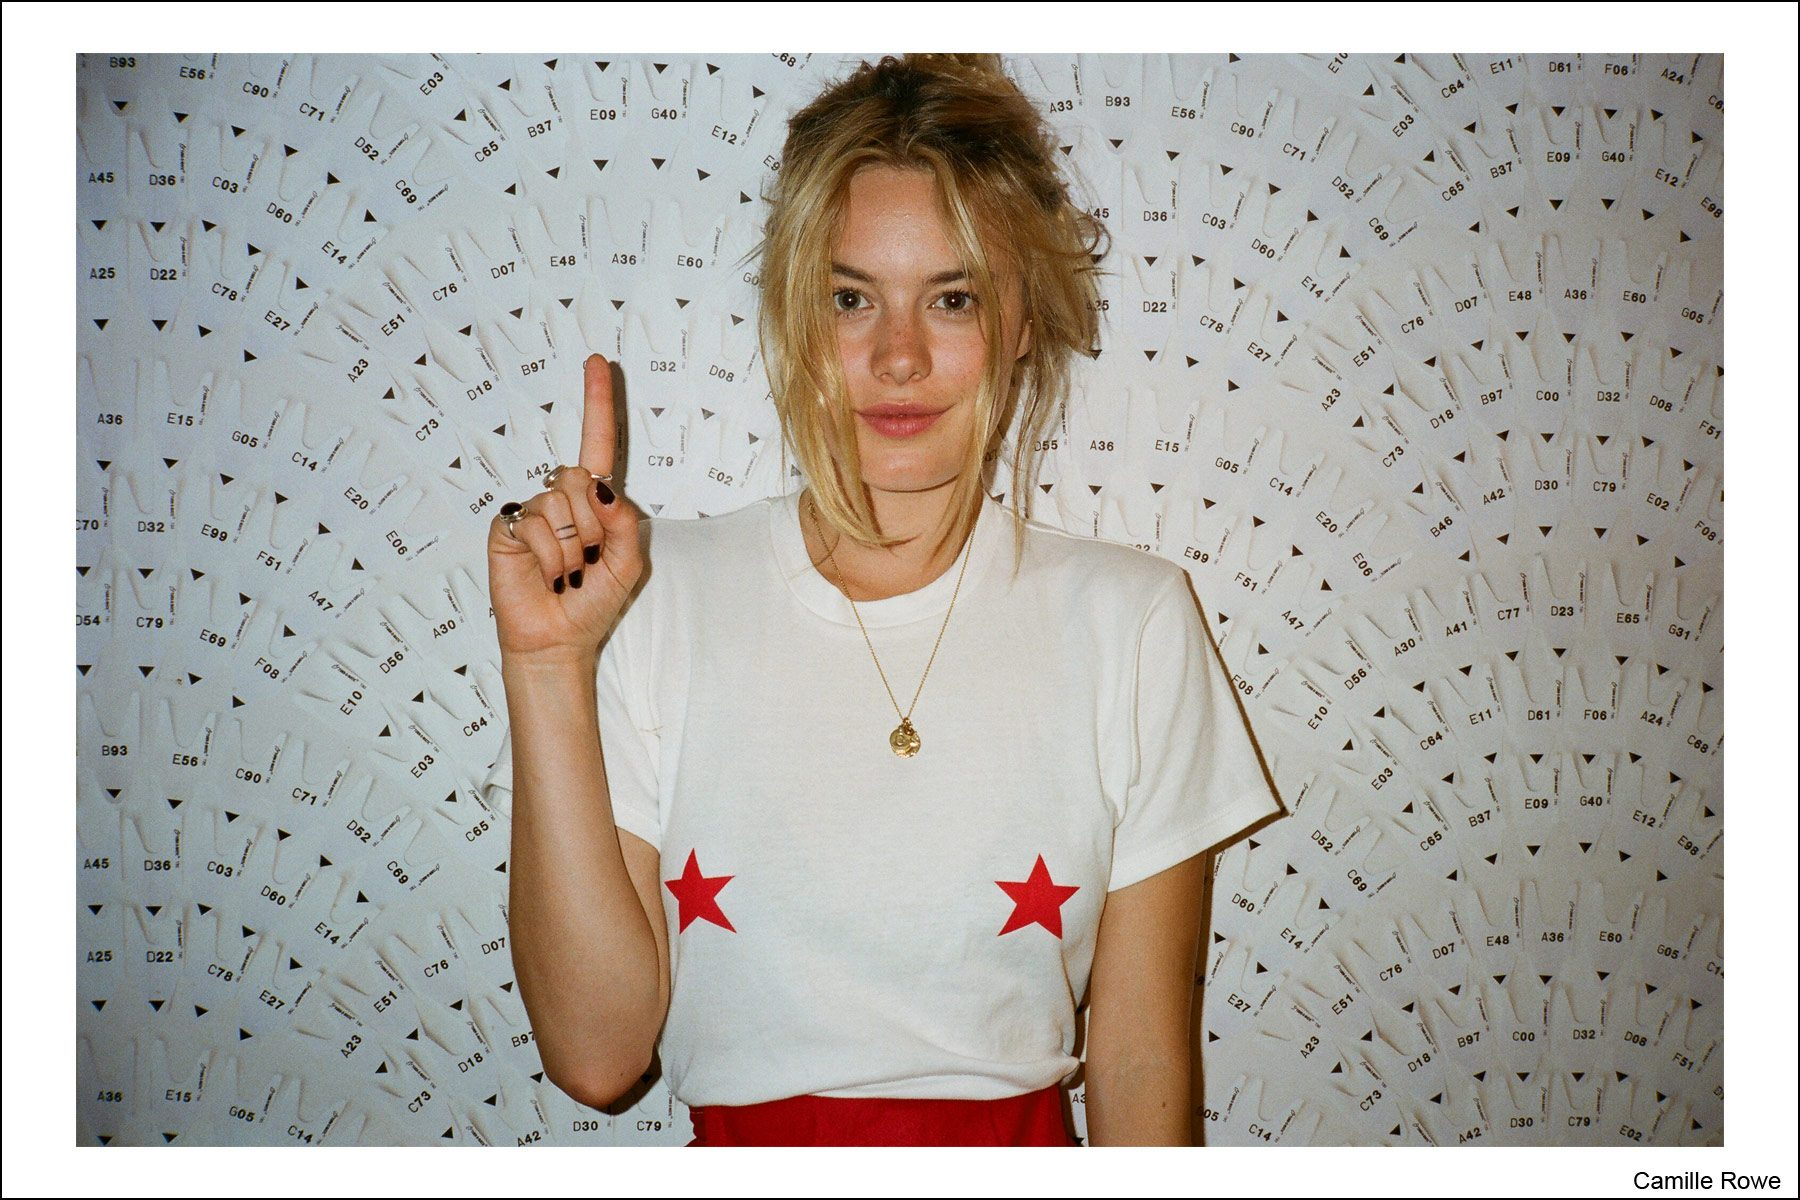 Model beauty Camille Rowe, photographed by Kristin Gallegos. Ponyboy magazine NY.